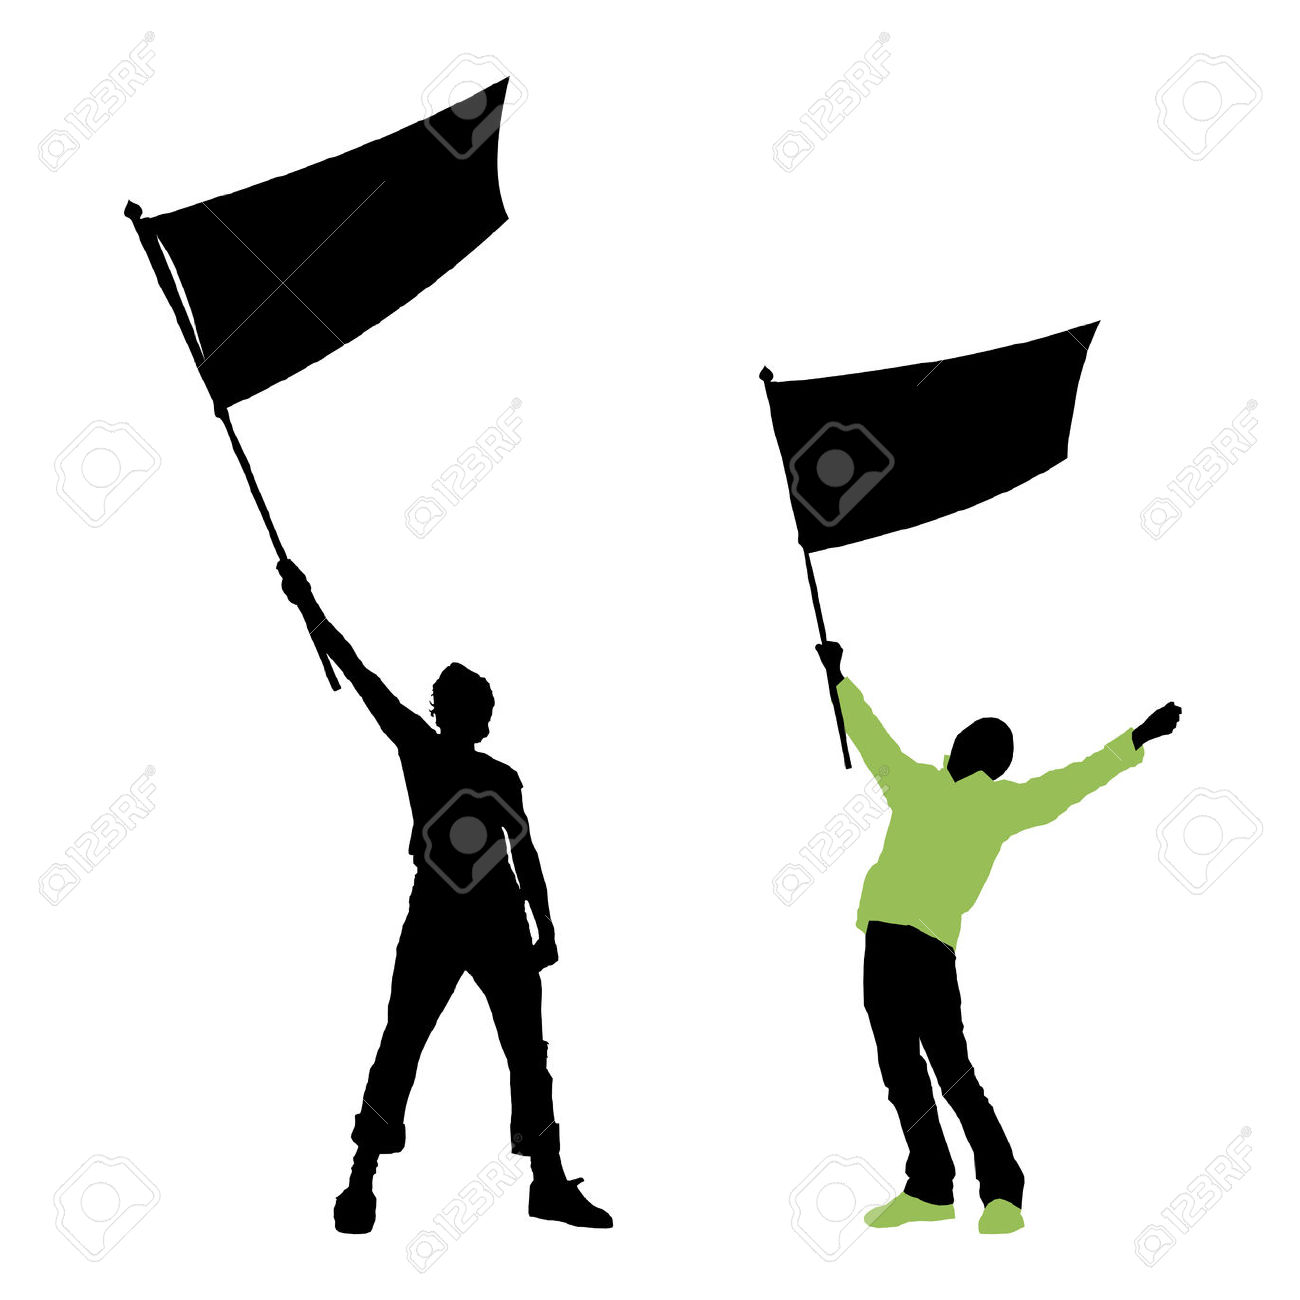 Person Holding Flag Clipart.